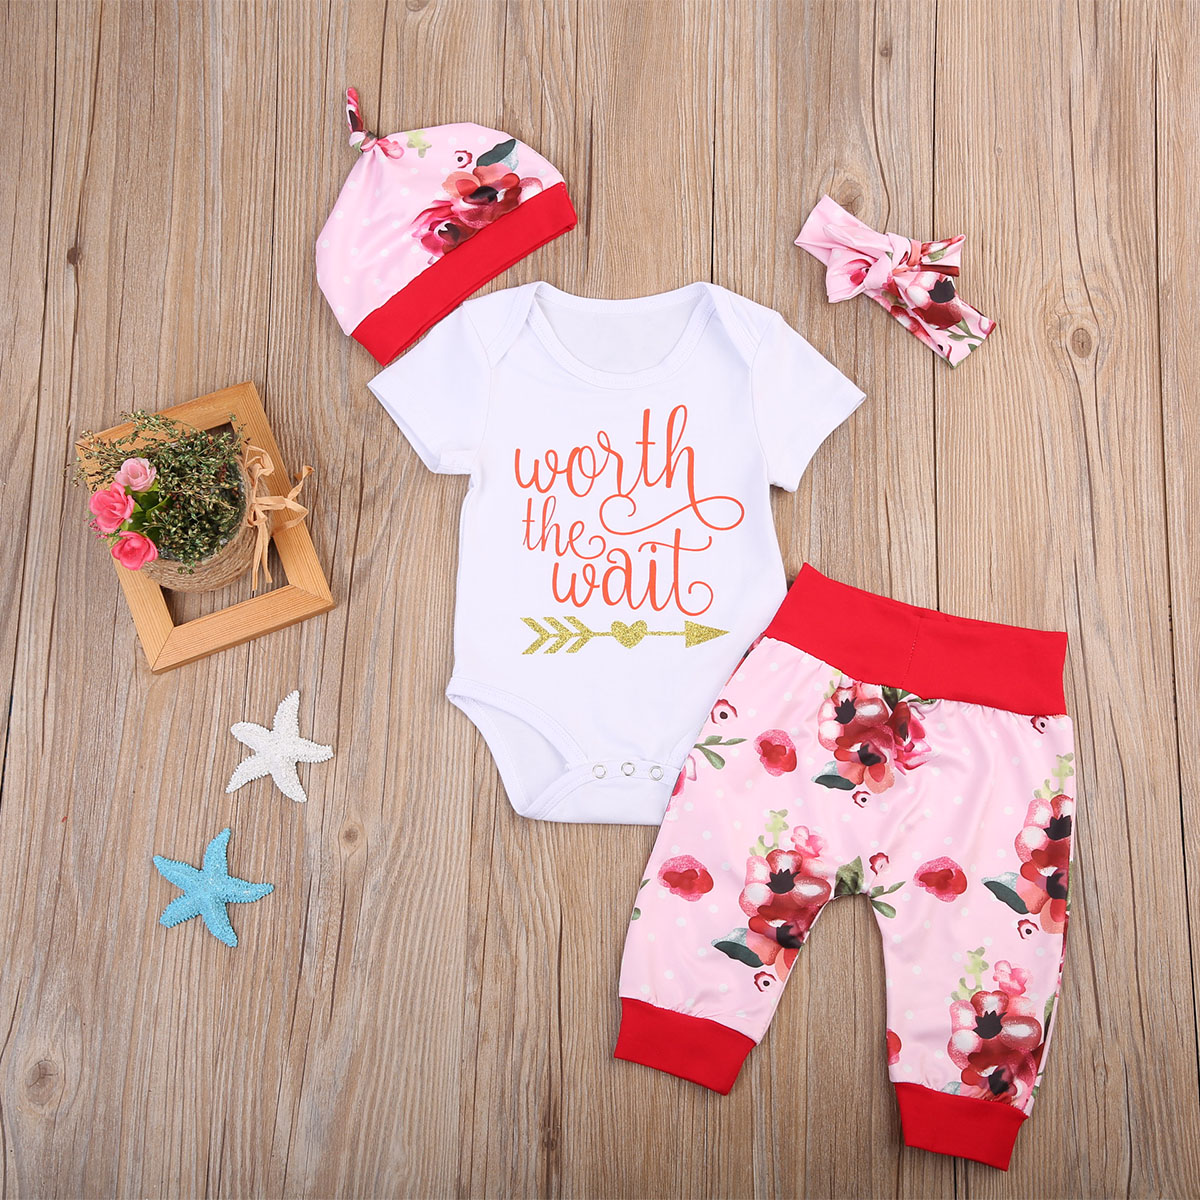 Newborn Baby Girls Worth The Wait Tops Romper Pants Floral Coming Home Outfits Set